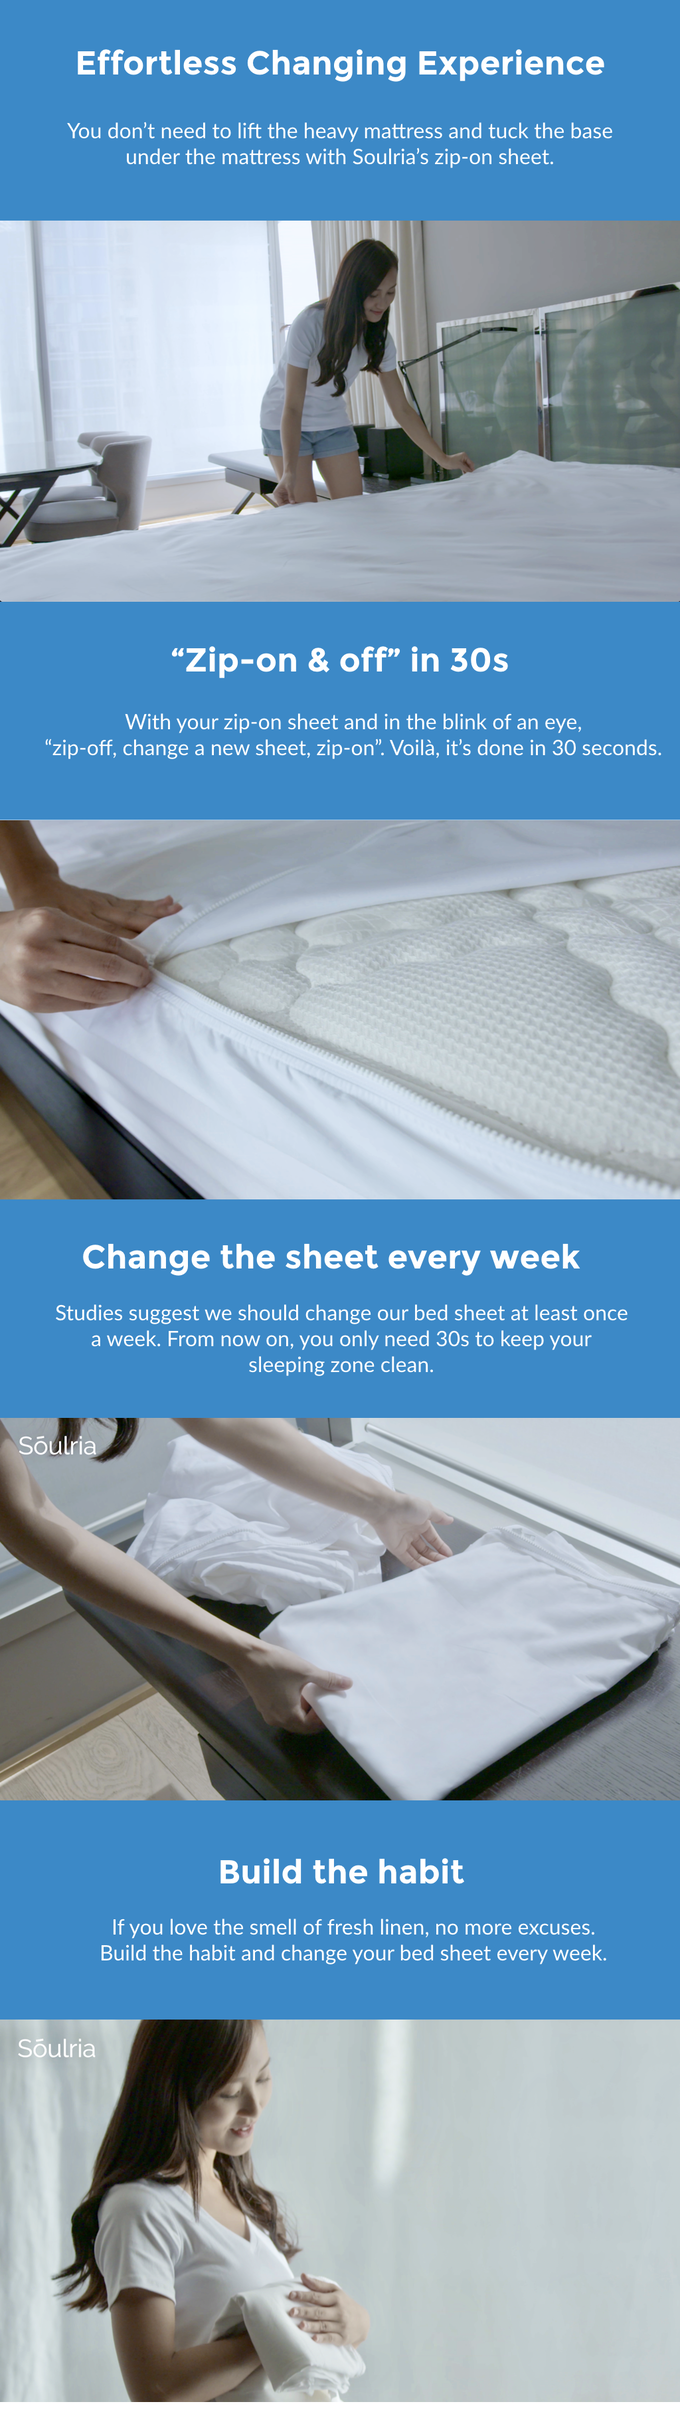 Soulria The Worlds Fastest Bed Sheet Changing Solution Singapore